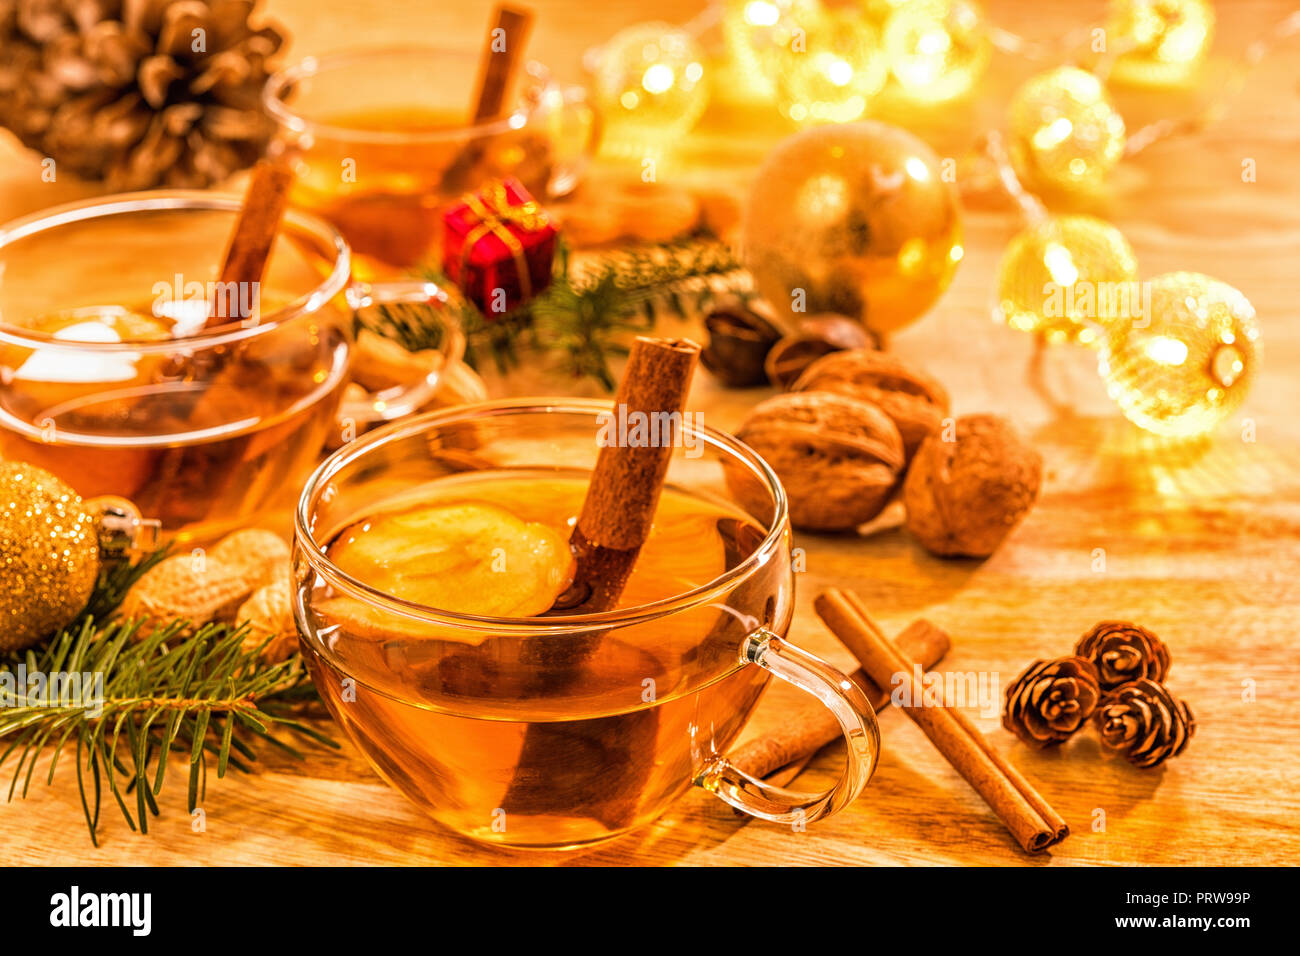 Glass cup with tea on wooden table Stock Photo